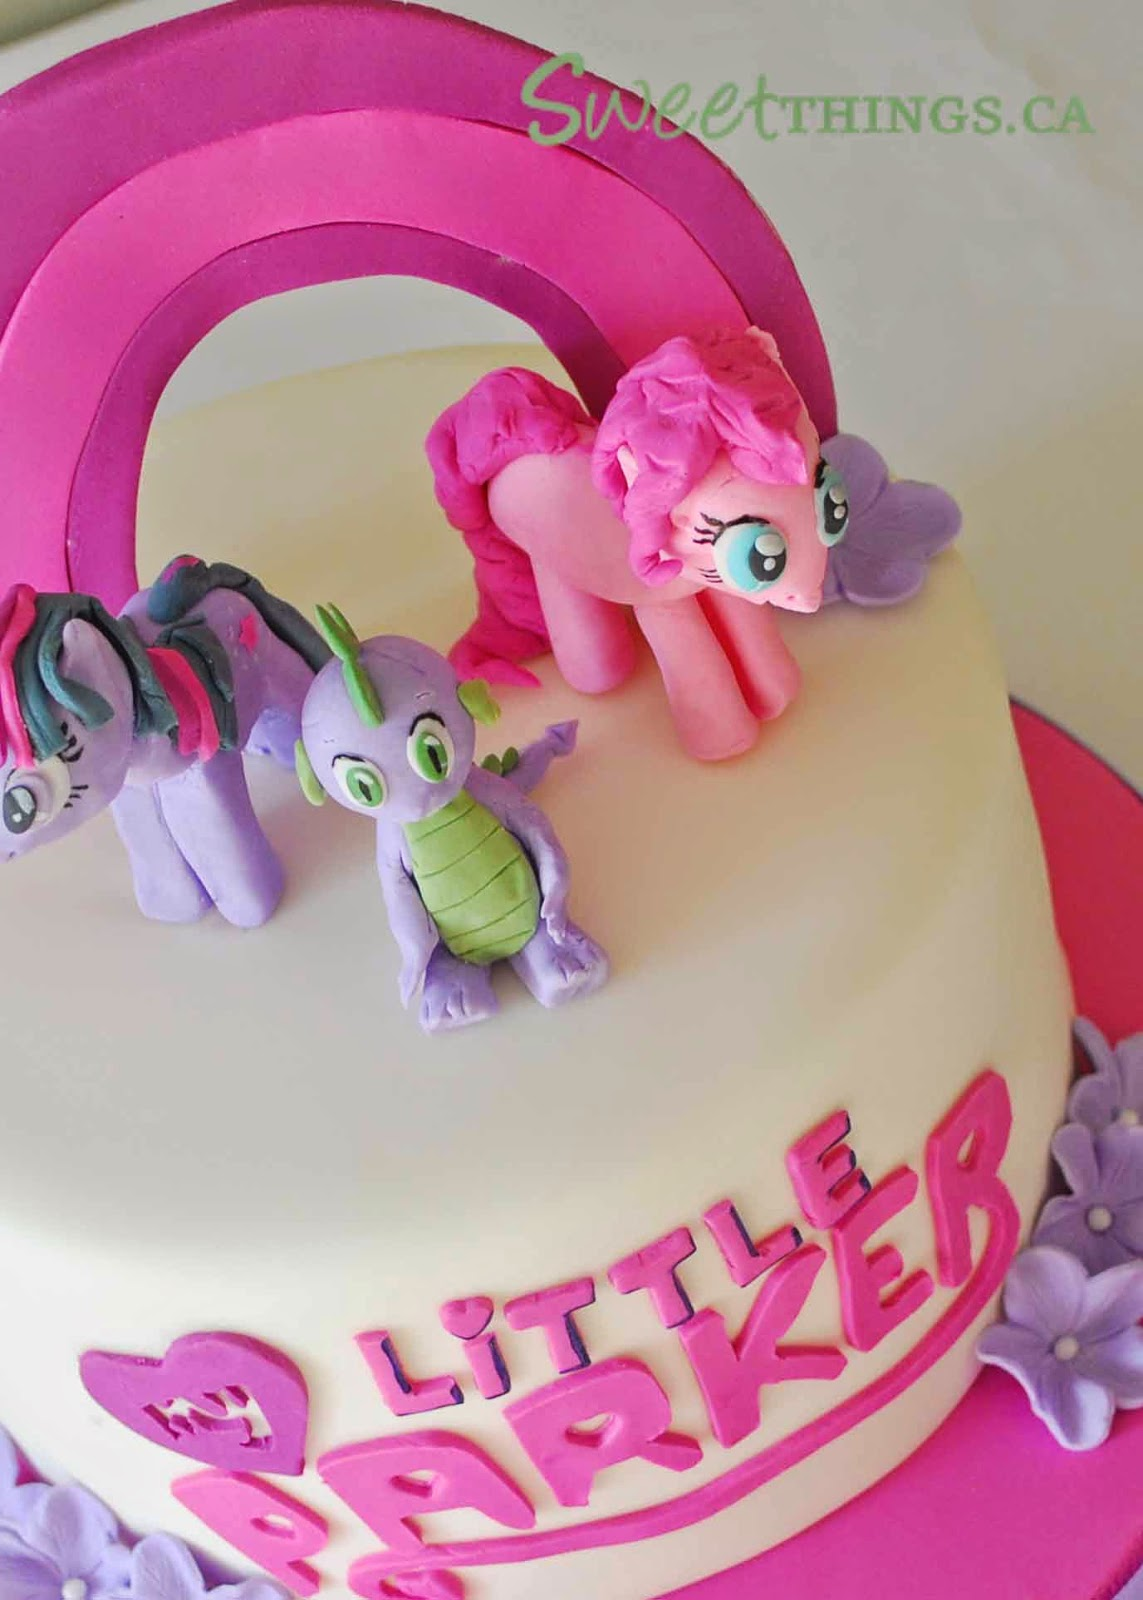 SweetThings 3rd Birthday Cake My Little Pony Cake